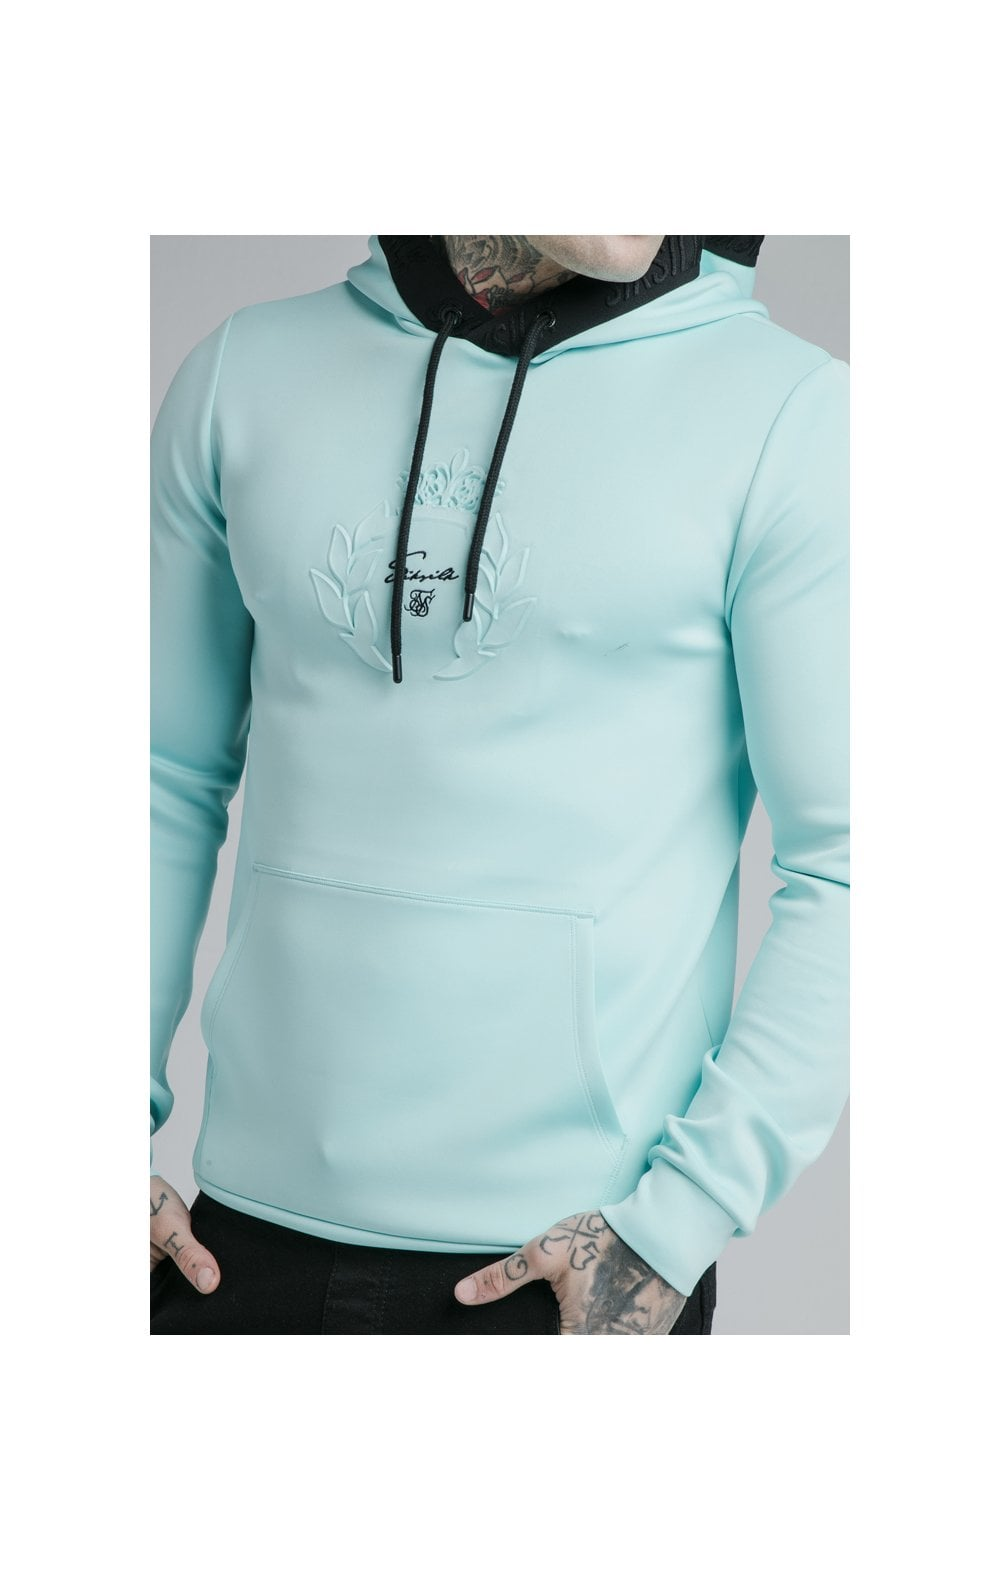 Load image into Gallery viewer, SikSilk Prestige Overhead Hoodie - Teal (1)